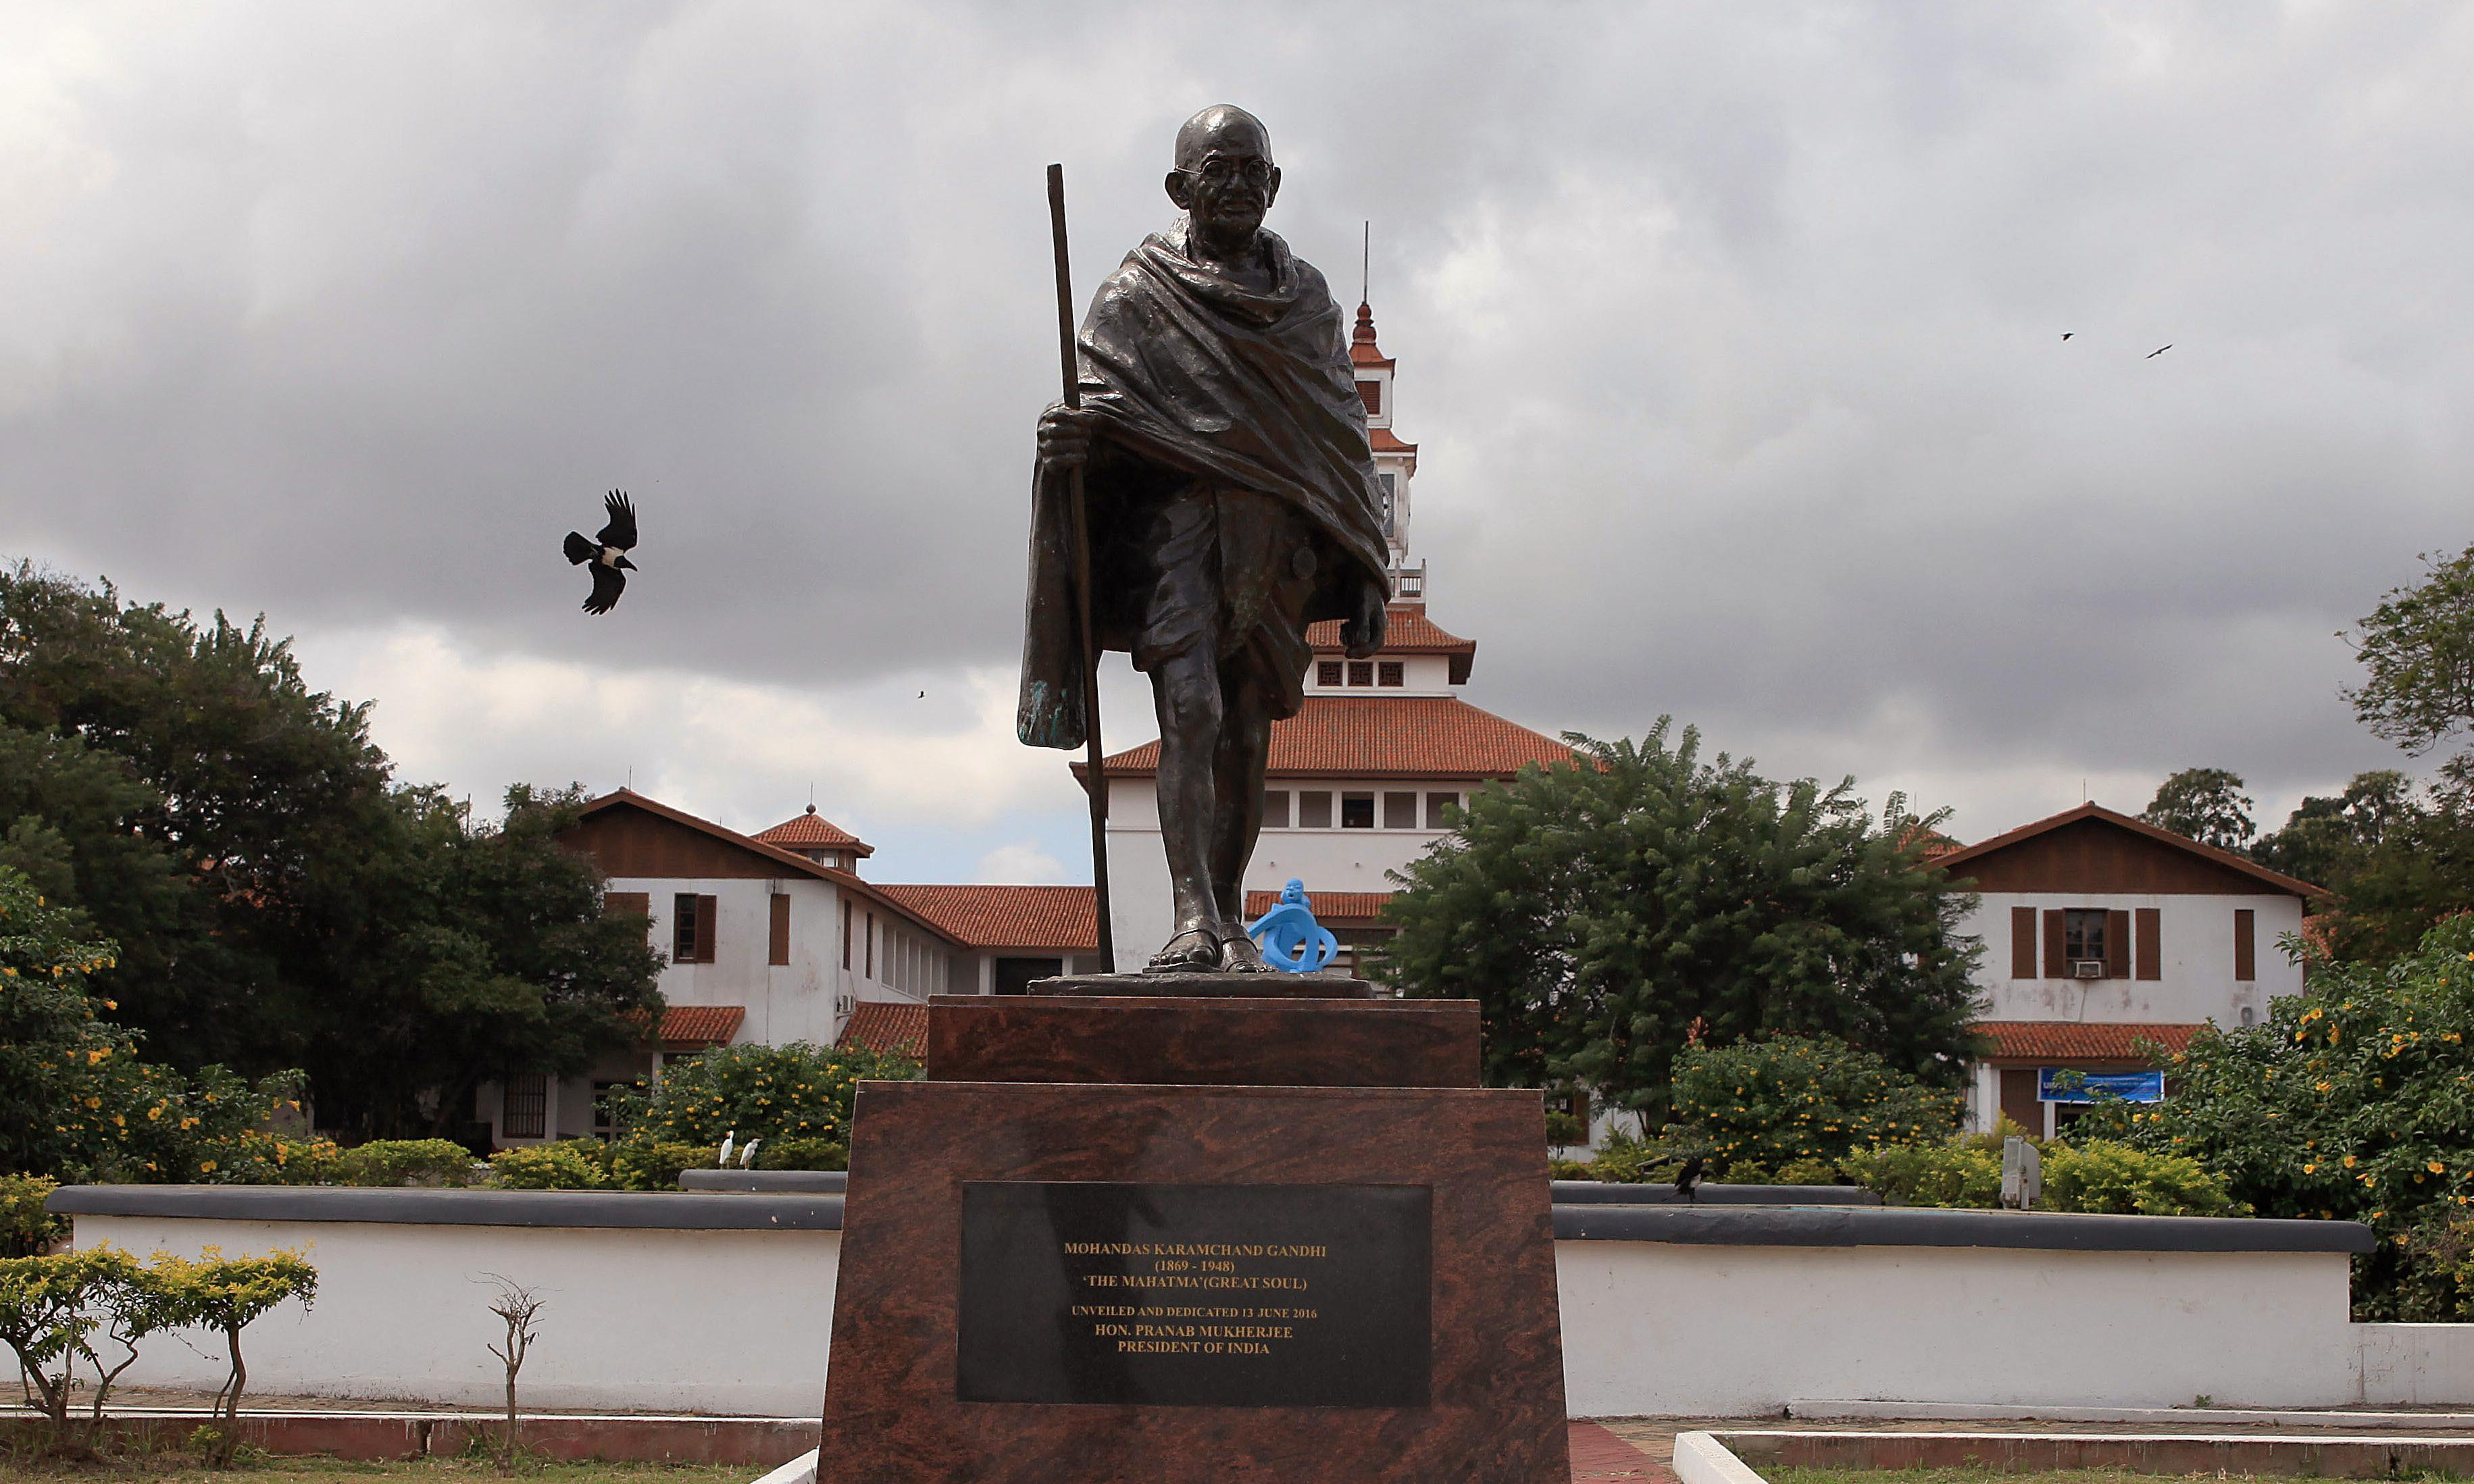 'Racist' Gandhi statue banished from Ghana university campus